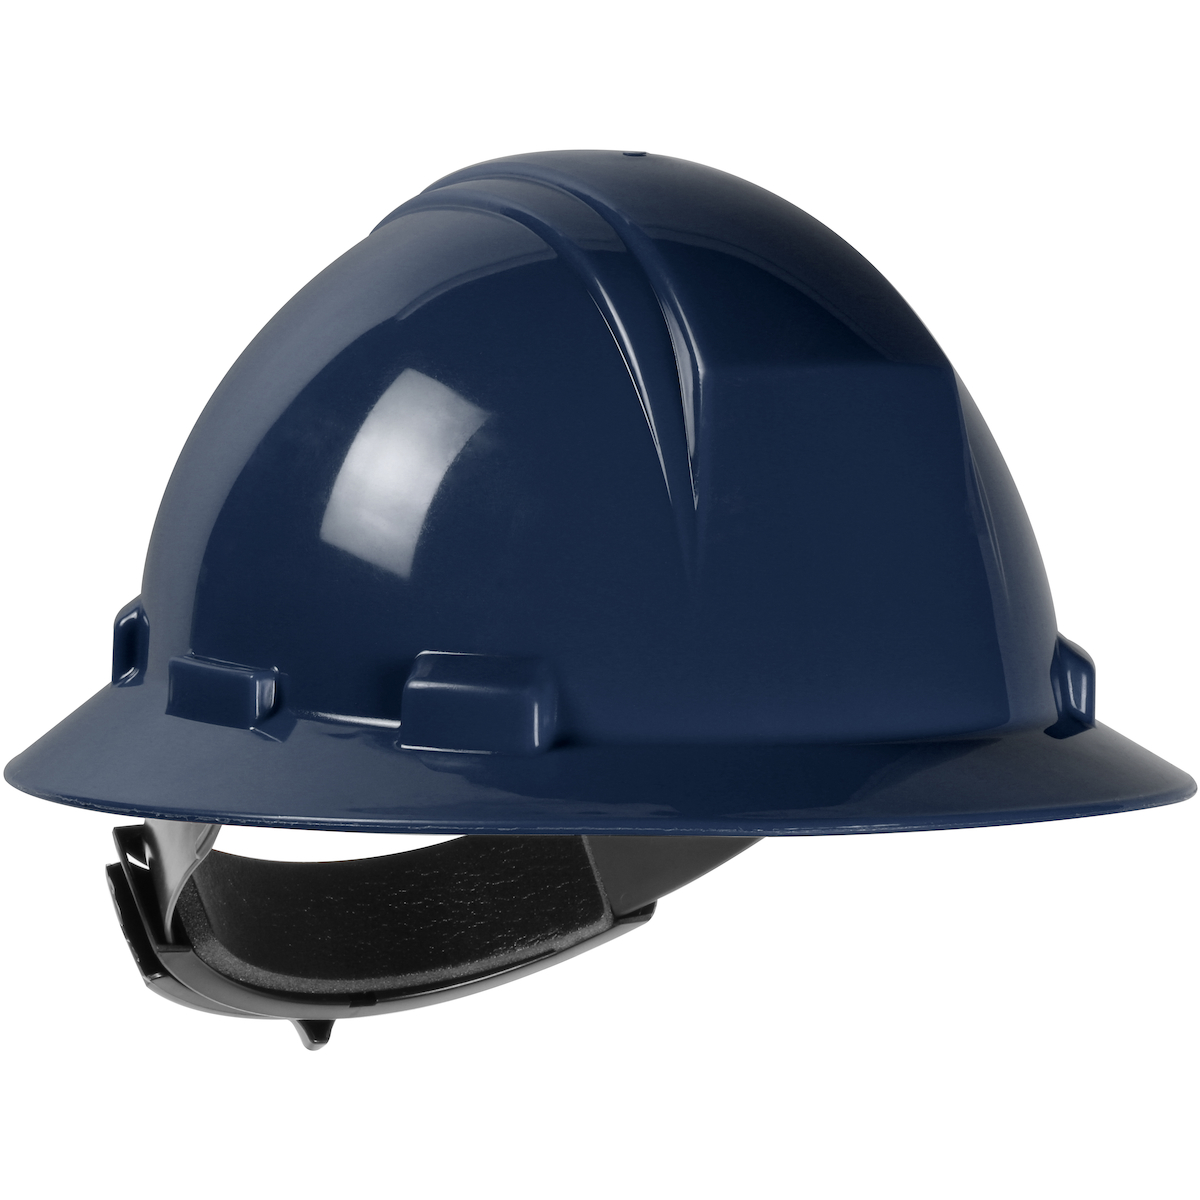 Type II Full Brim Hard Hat with HDPE Shell, 4-Point Textile Suspension and Wheel Ratchet Adjustment, Navy, OS